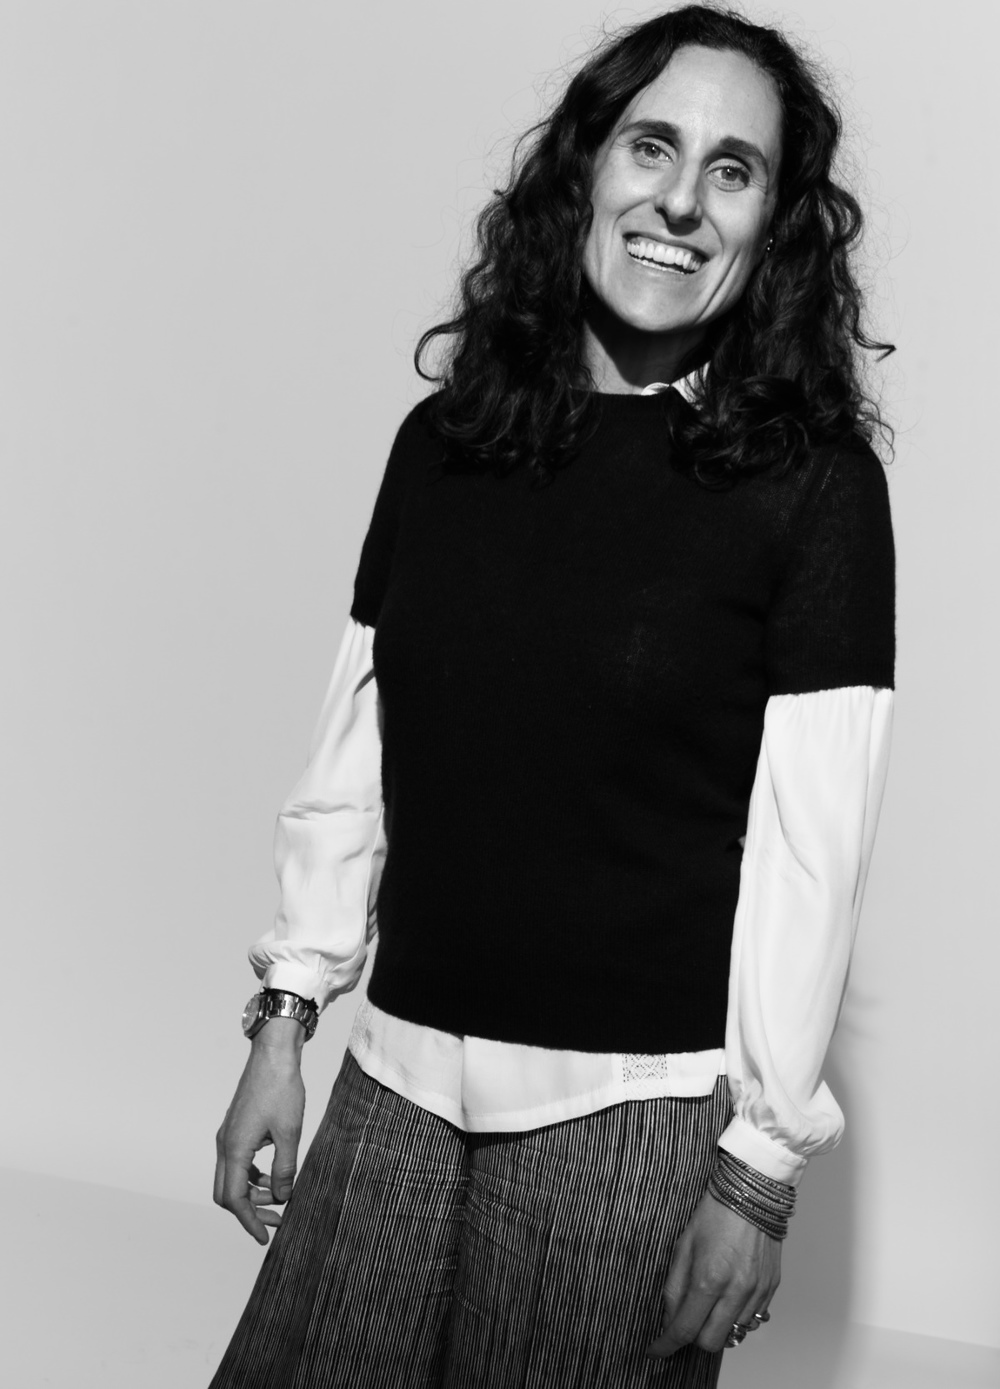 Giovanna Noe photographed by Kate Owen black and white portrait #powertrip Marie Claire Magazine portraits of power